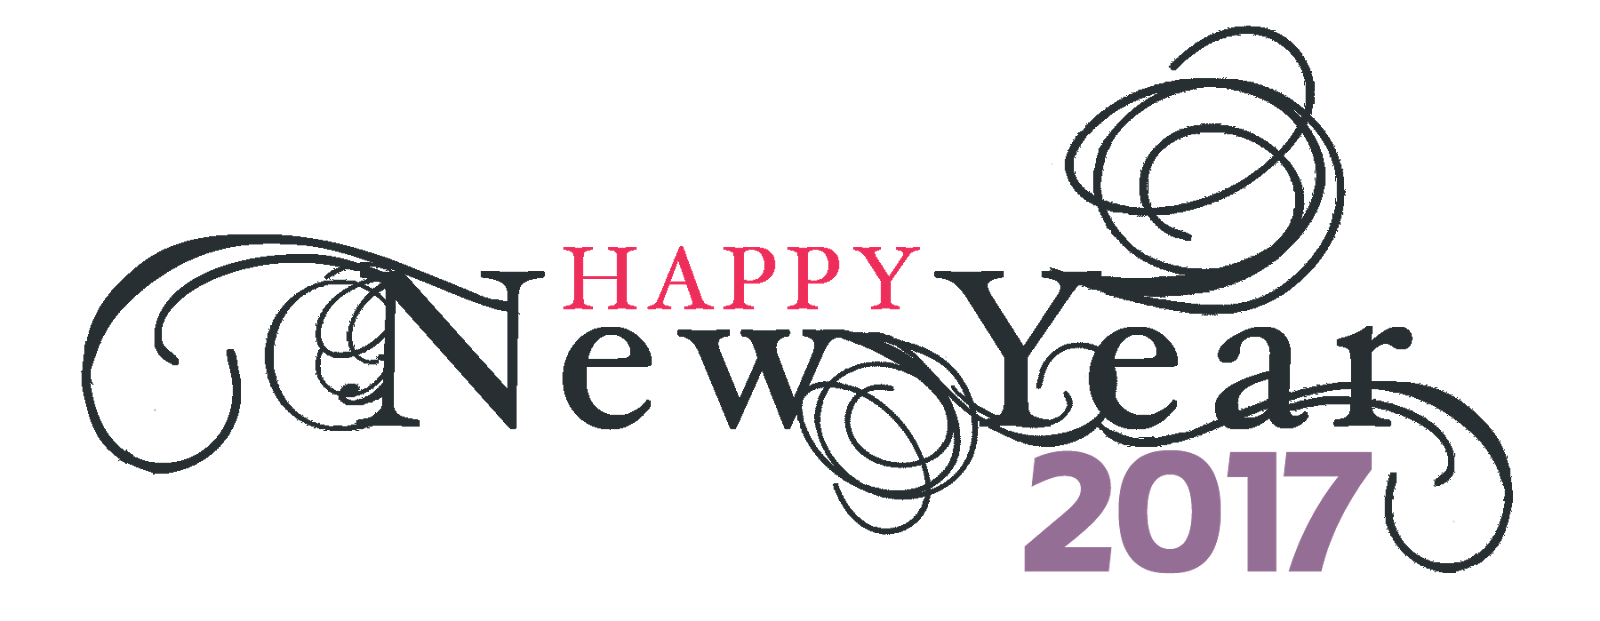 Happy New Year 2017 Png Logo.